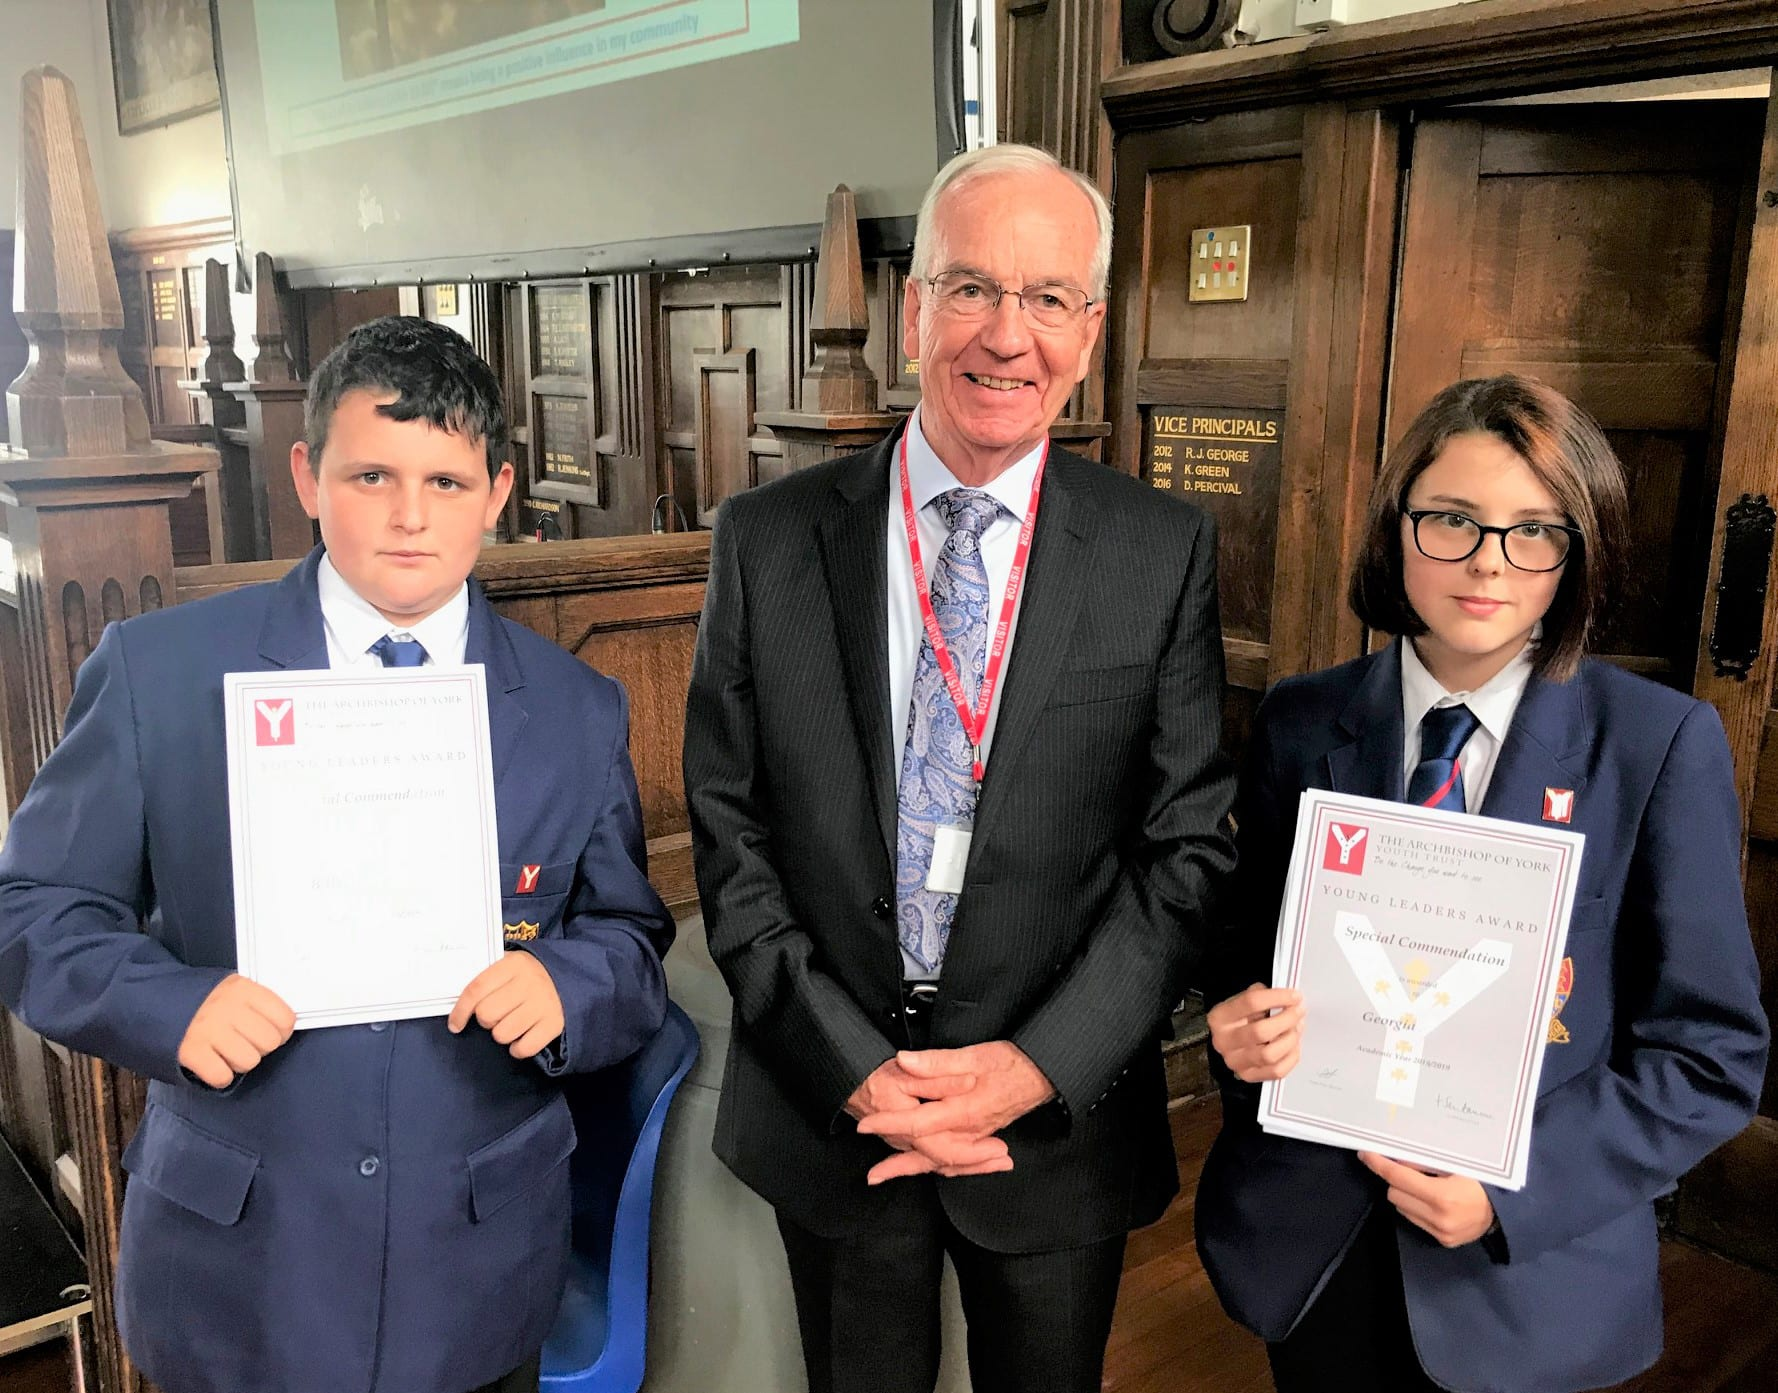 Year 8 students receive Young Leaders Awards